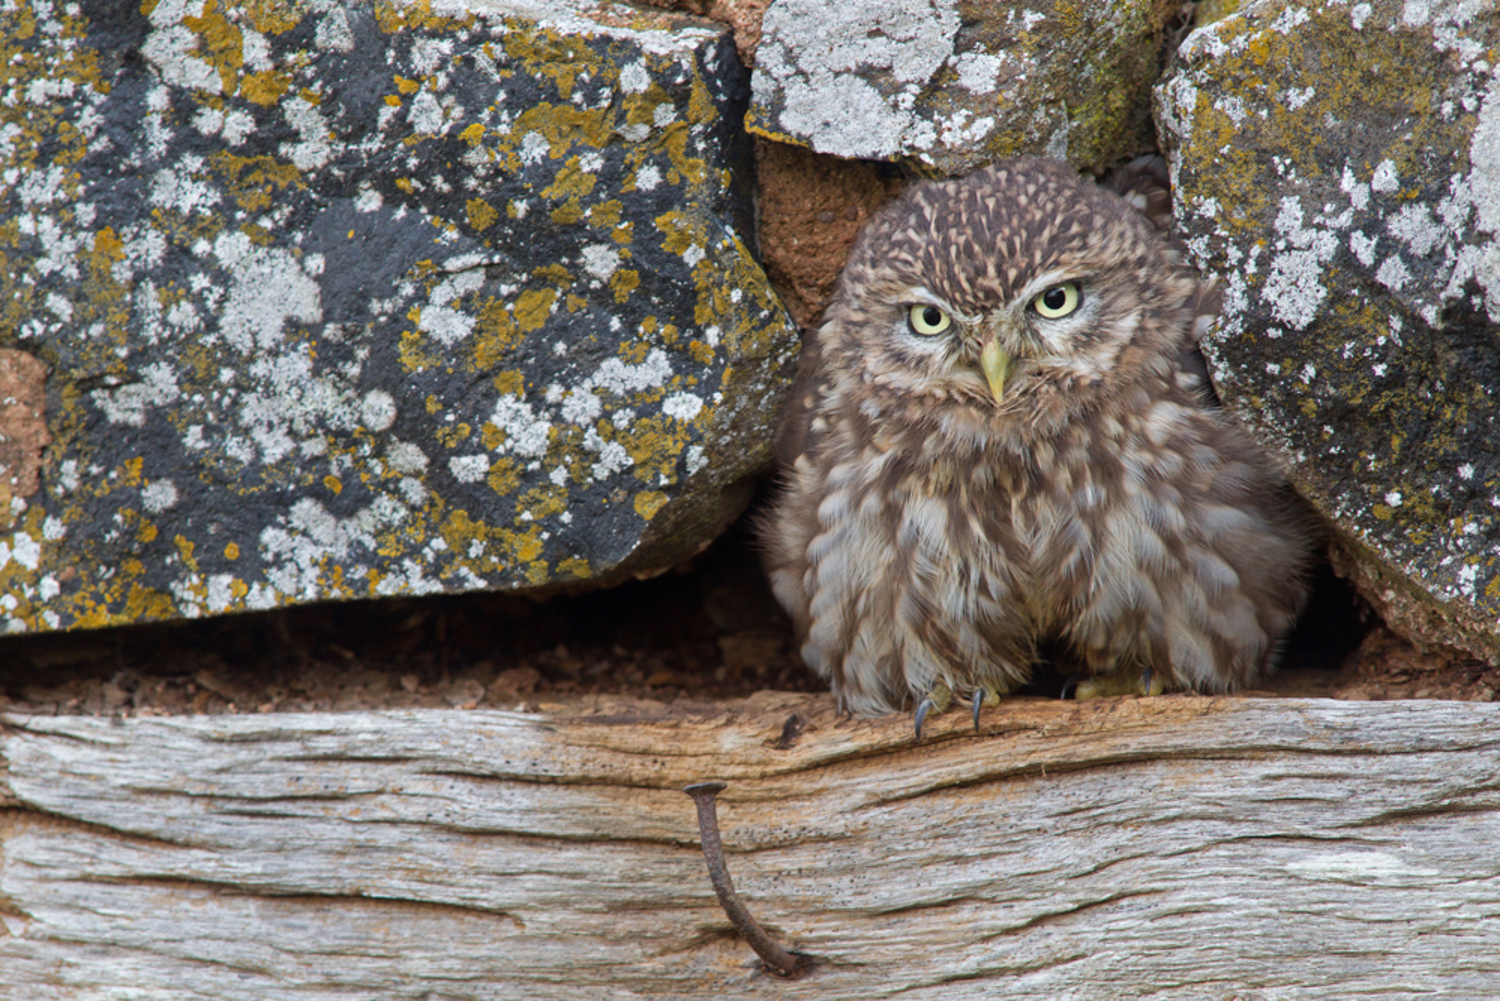 Little Owl and the rusty nail